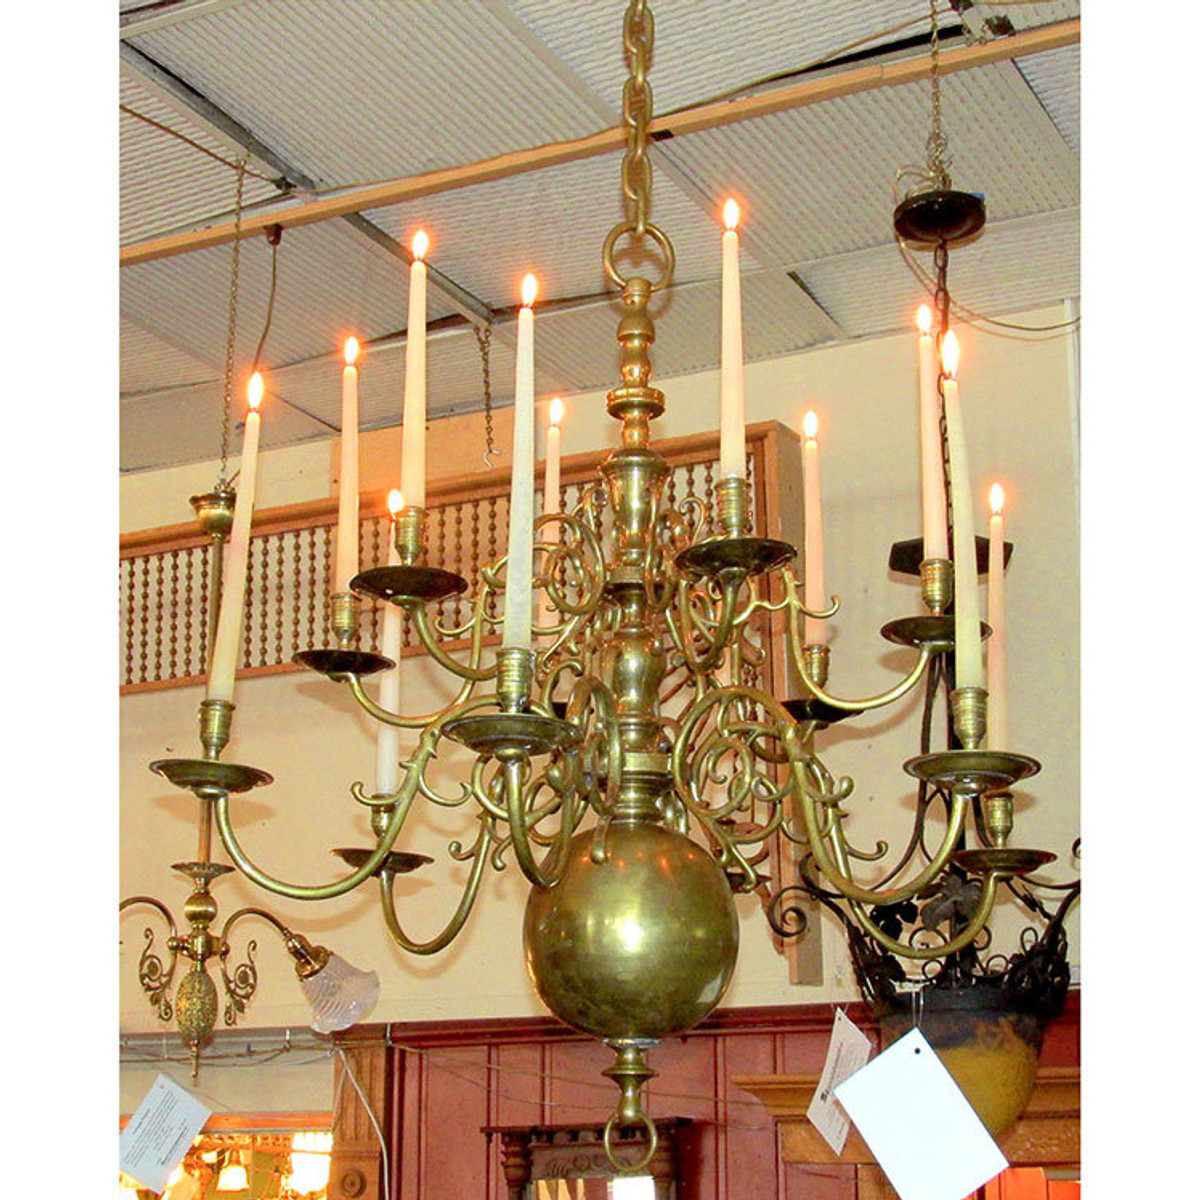 L16008 - Antique Georgian Style Twelve Arm Brass Chandelier